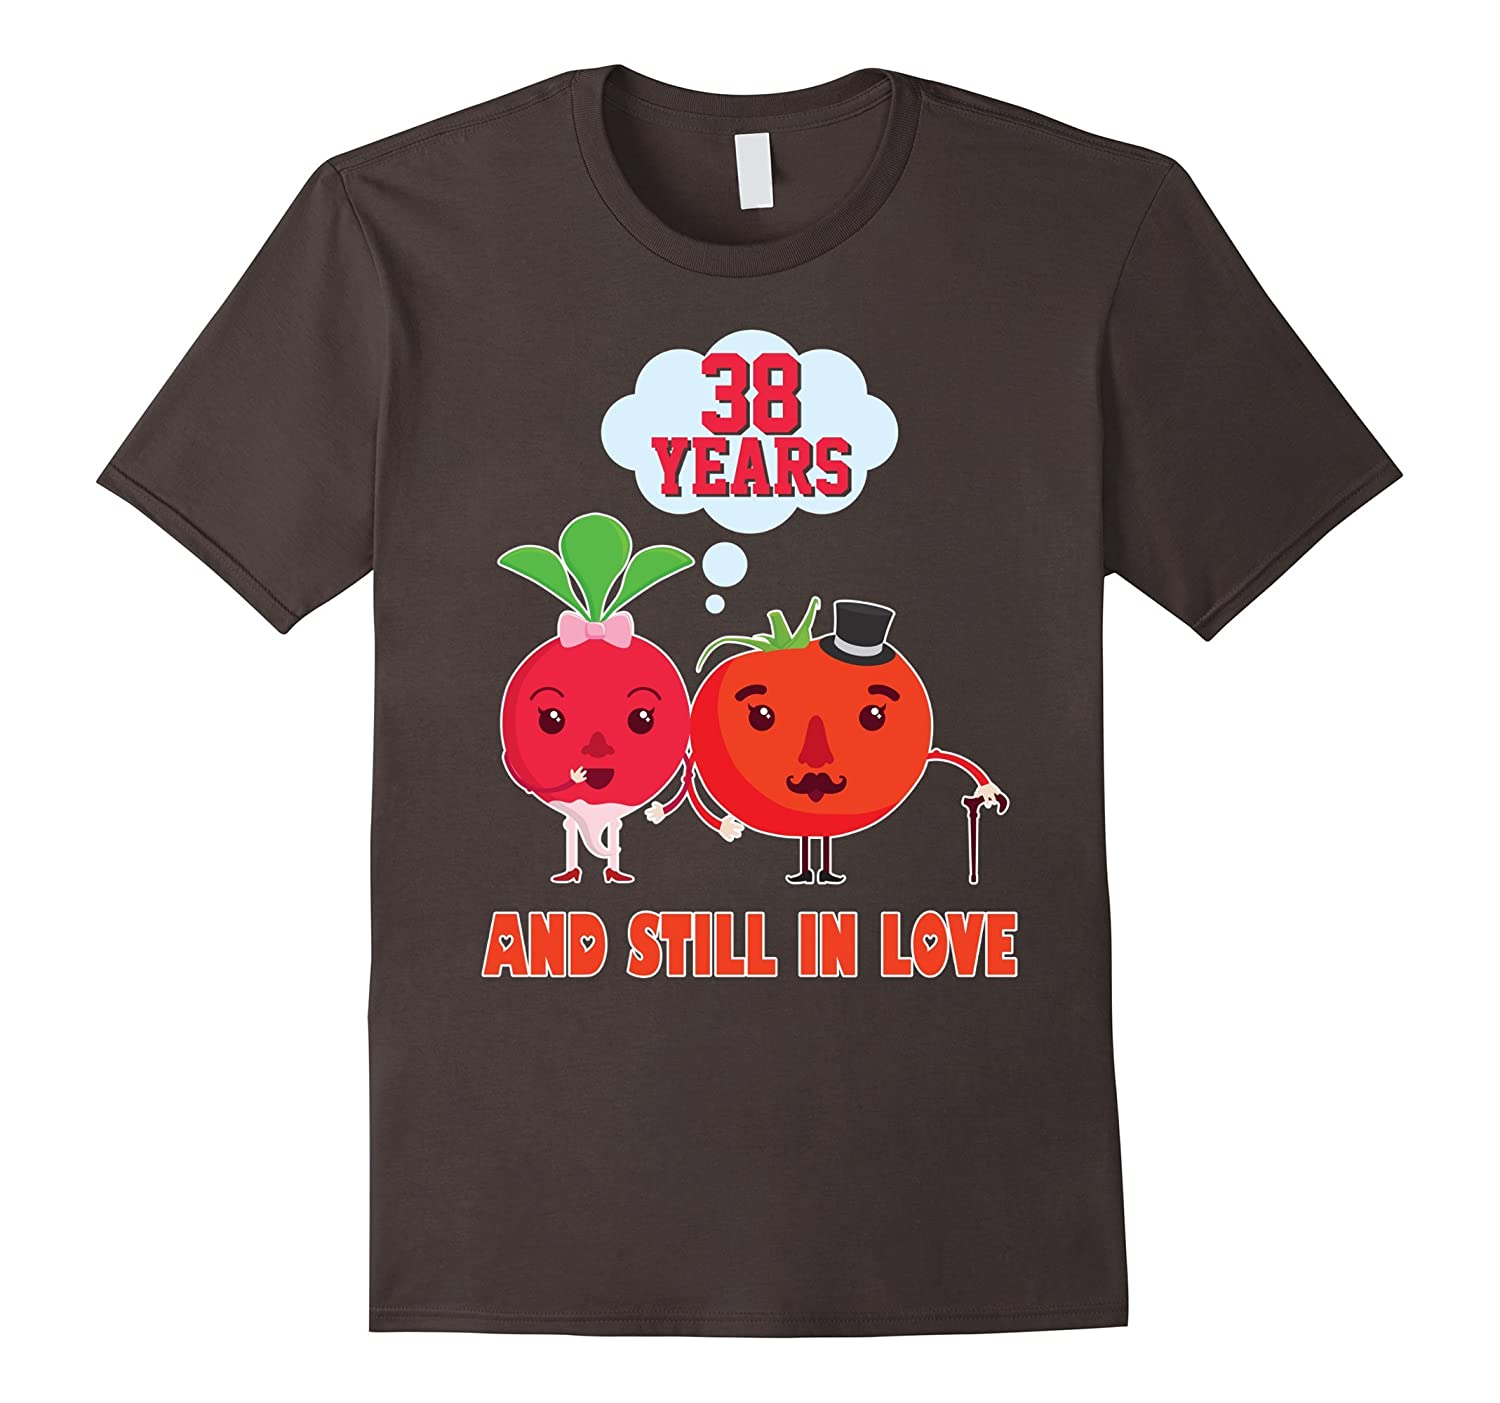 38th Wedding Anniversary Gift Ideas: 38th Wedding Anniversary T-Shirt For HusbandWife Cool Gift